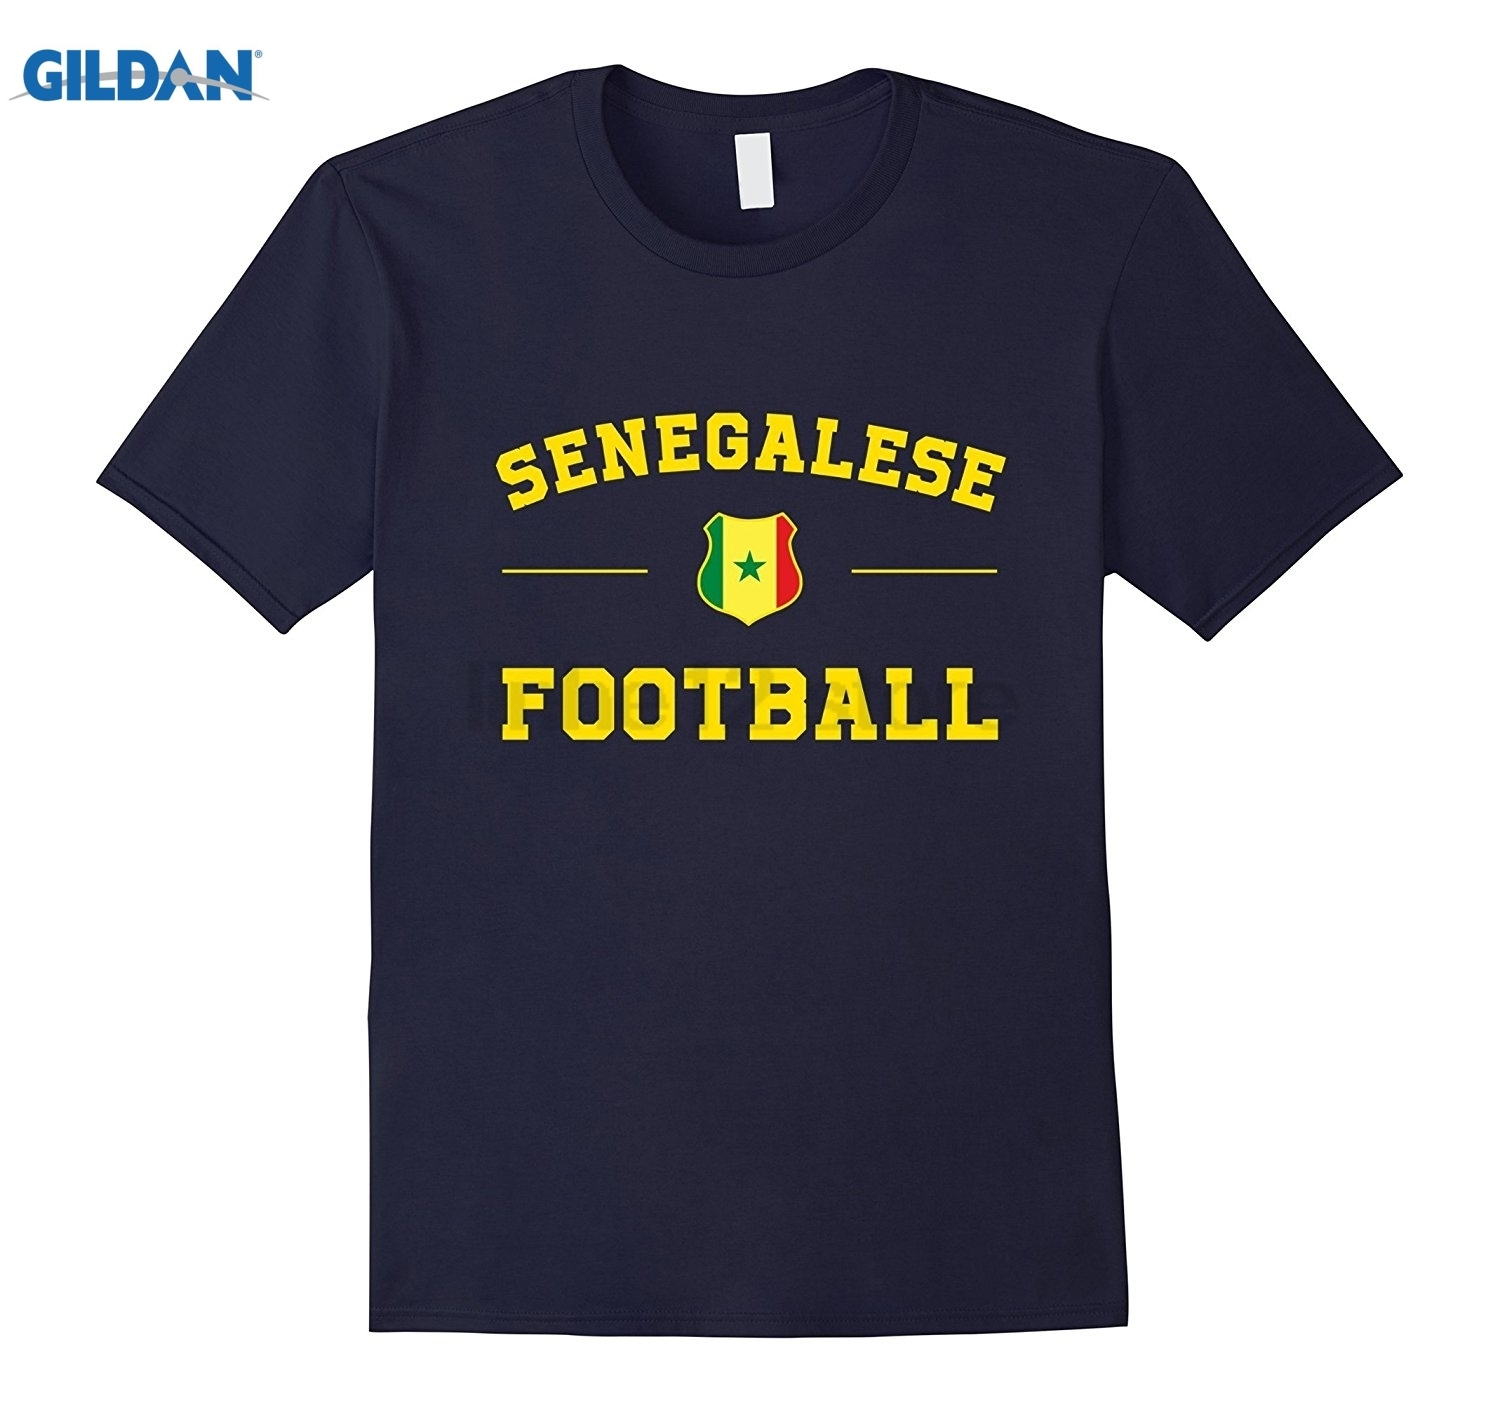 GILDAN Senegal Shirt - Senegal Jersey Womens T-shirt